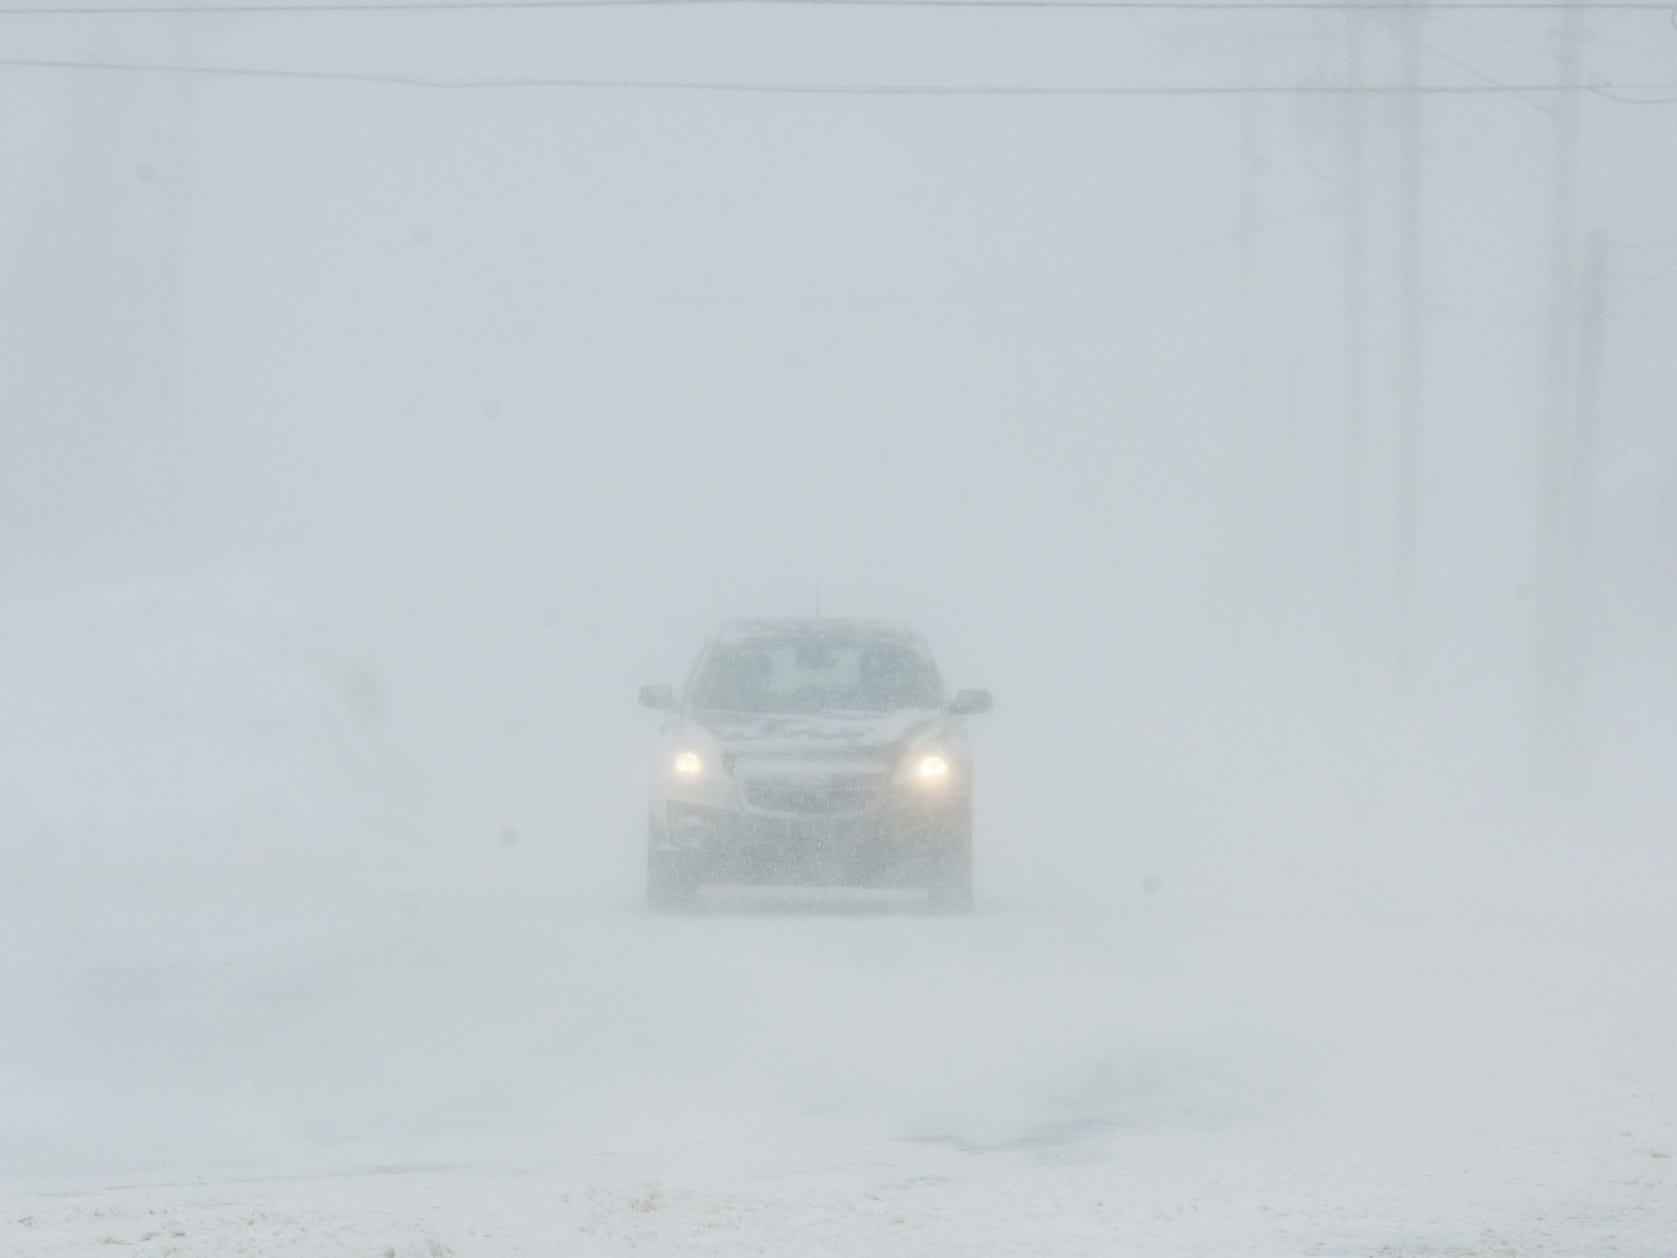 A car heads down Midway Avenue in St. Joseph, Mich., in whiteout conditions, Jan. 29, 2019, after a winter storm dumped several inches of snow in Southwest Michigan.